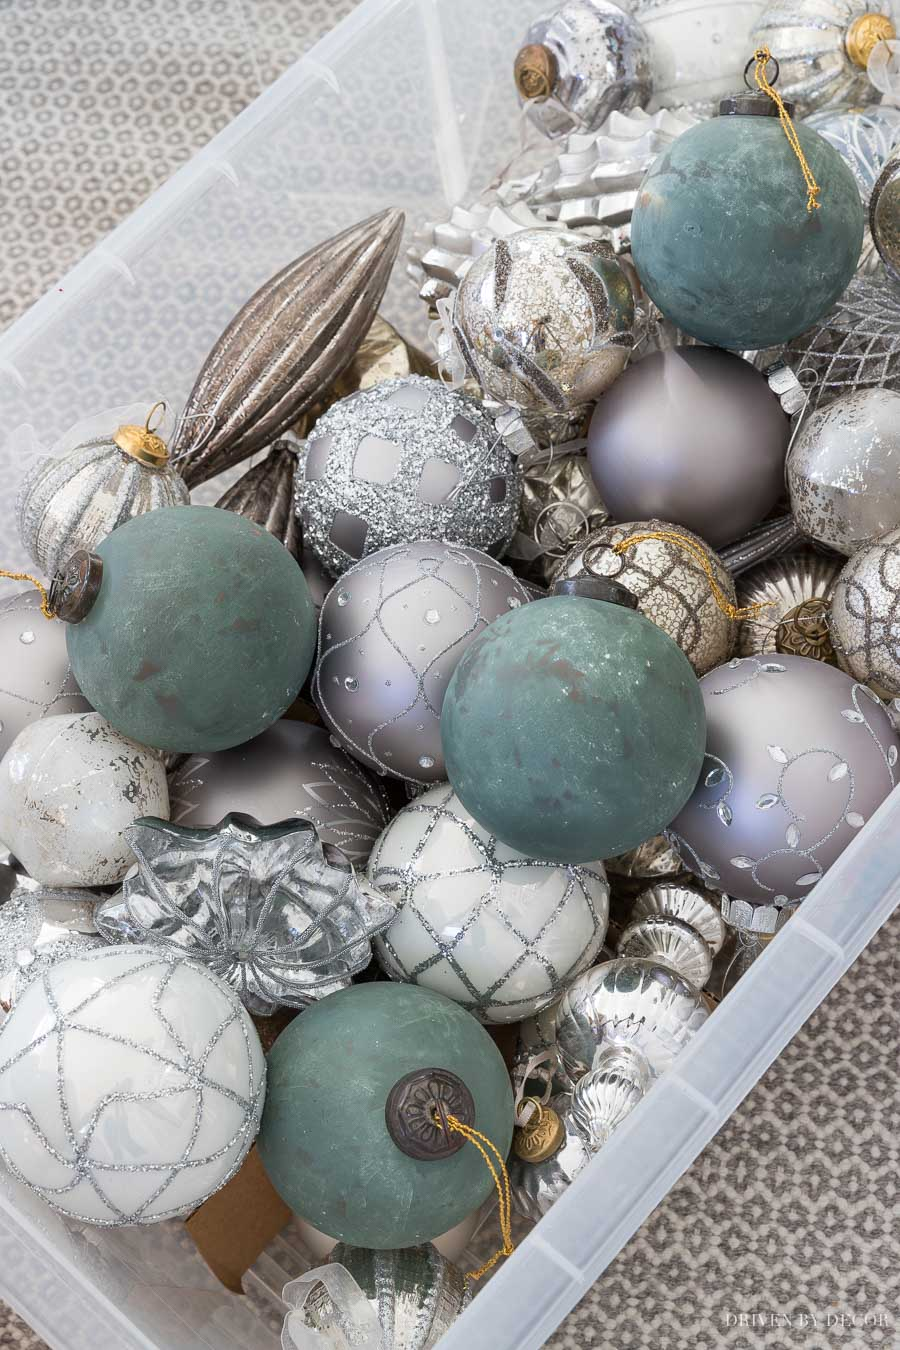 Love this mix of gold, silver, and green ornaments for decorating a Christmas tree!